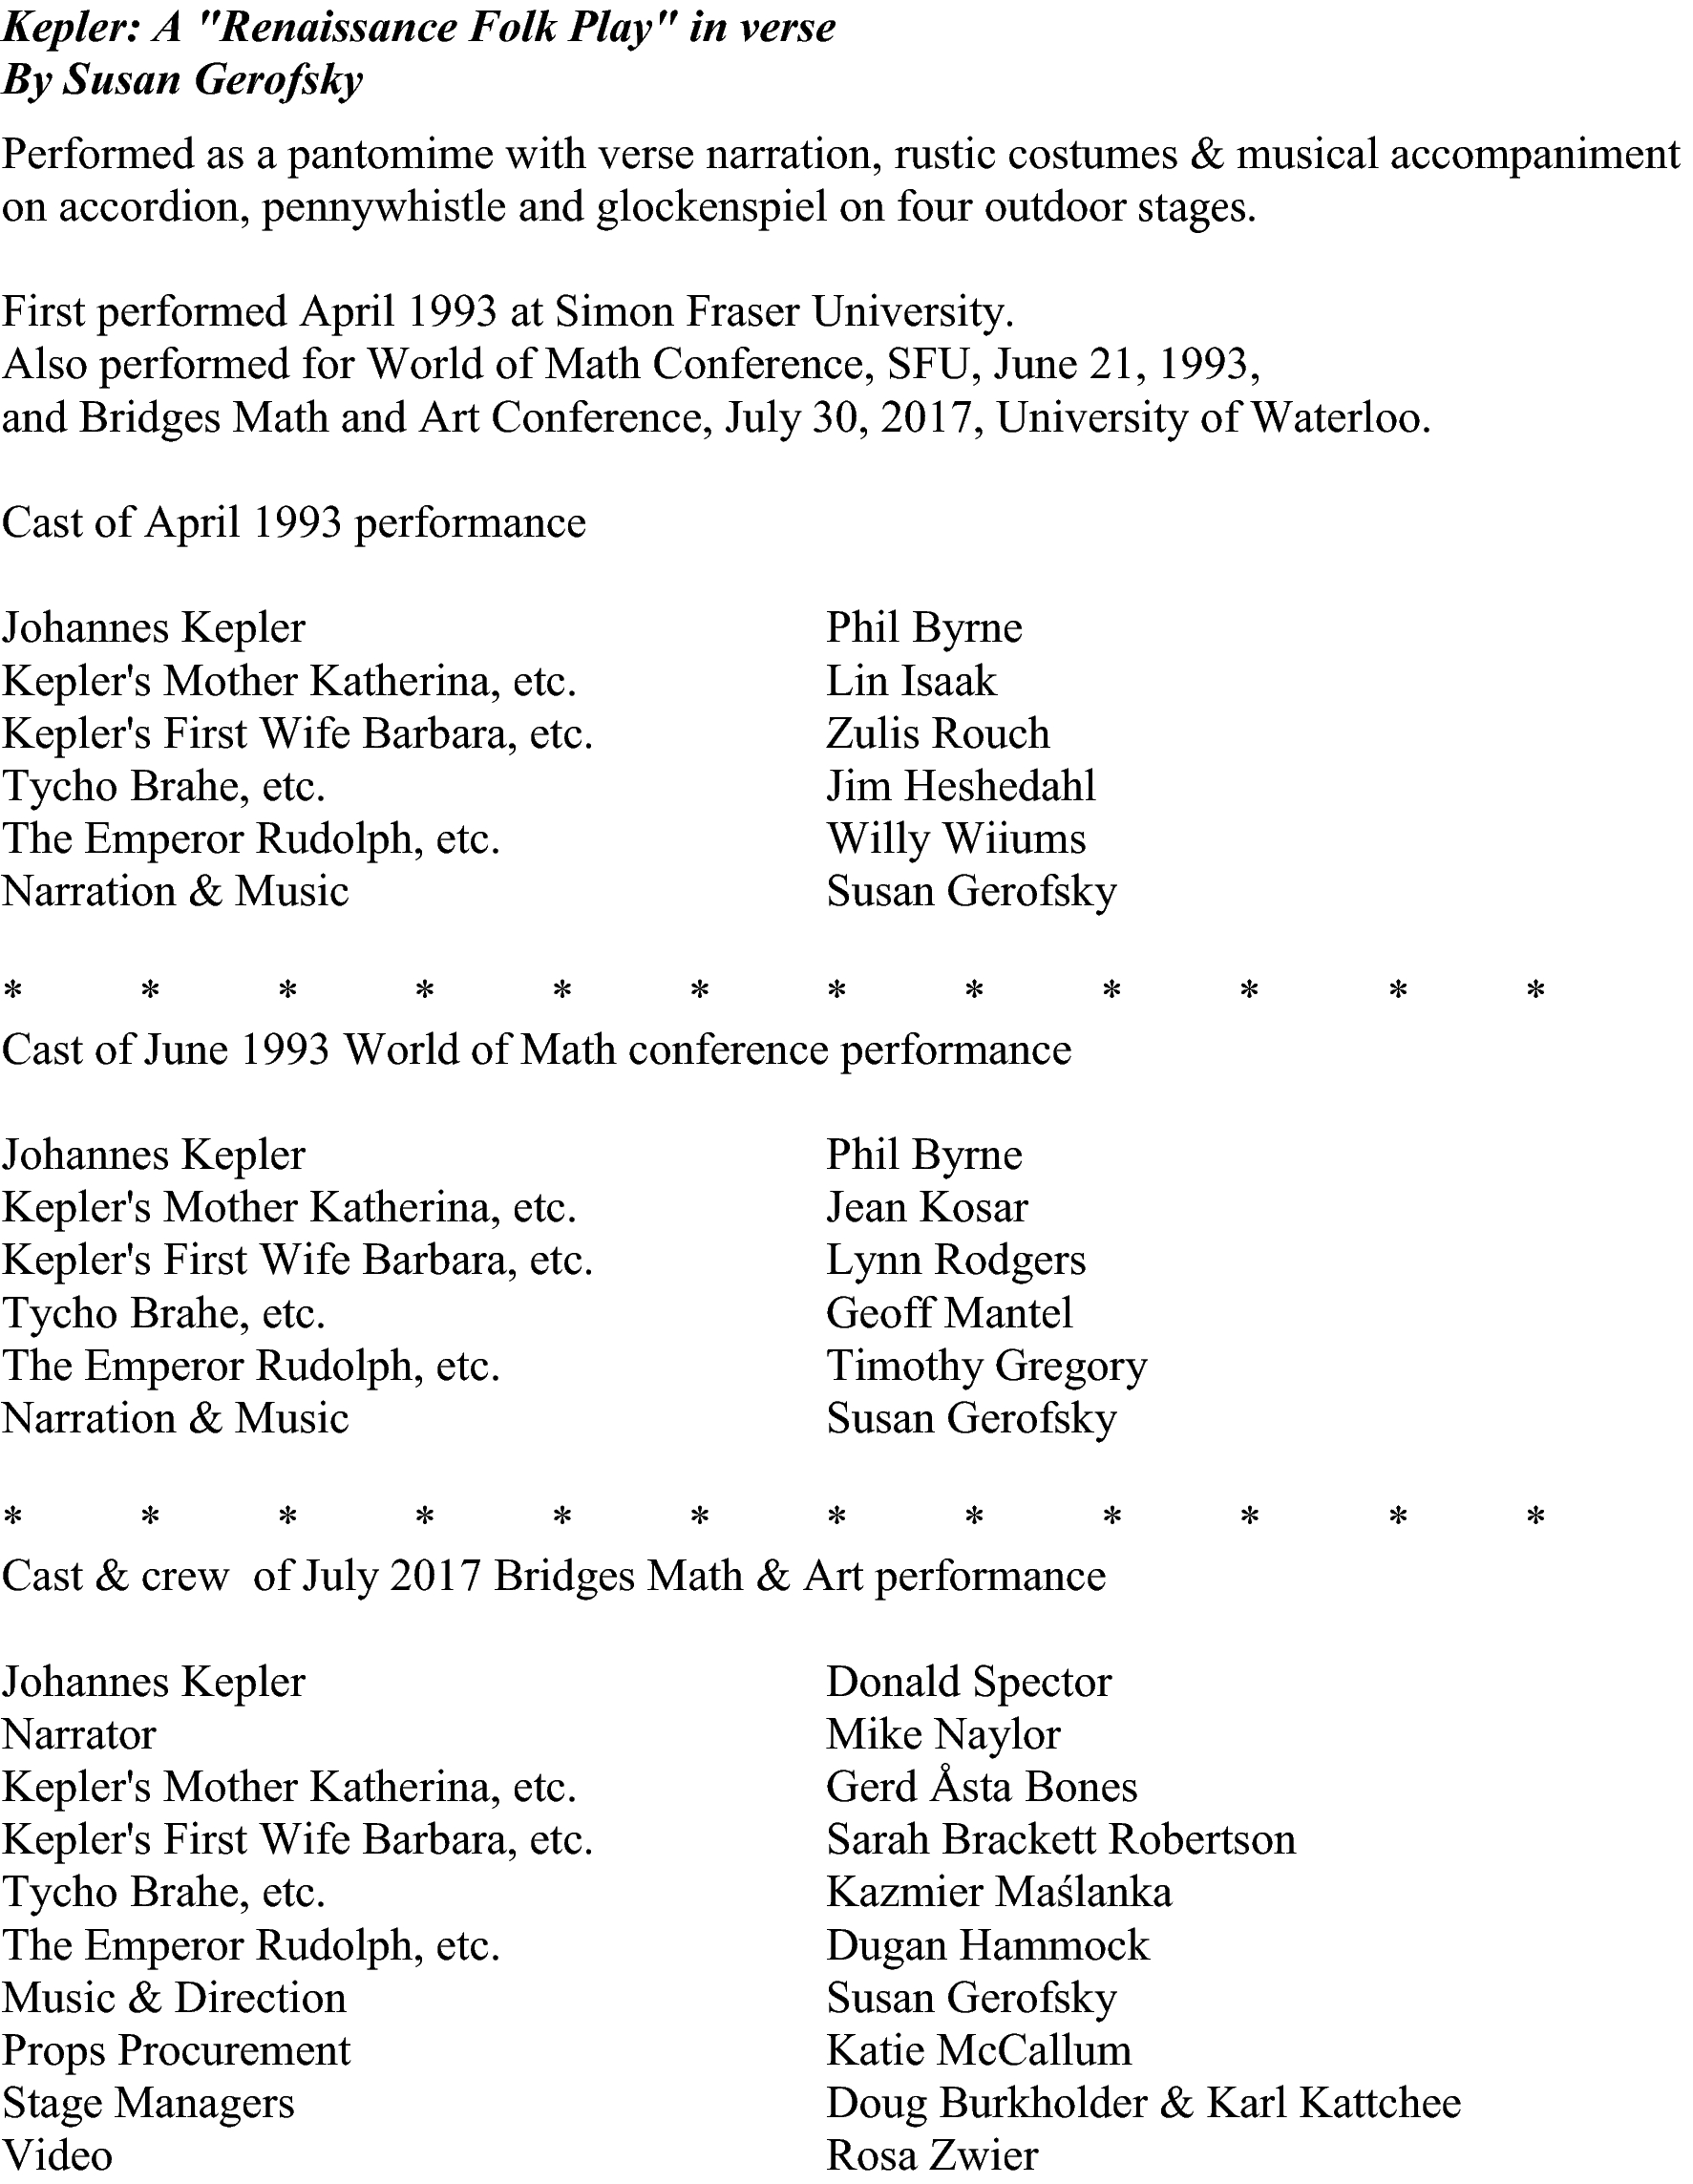 Approaching the History of Mathematics via the Performing